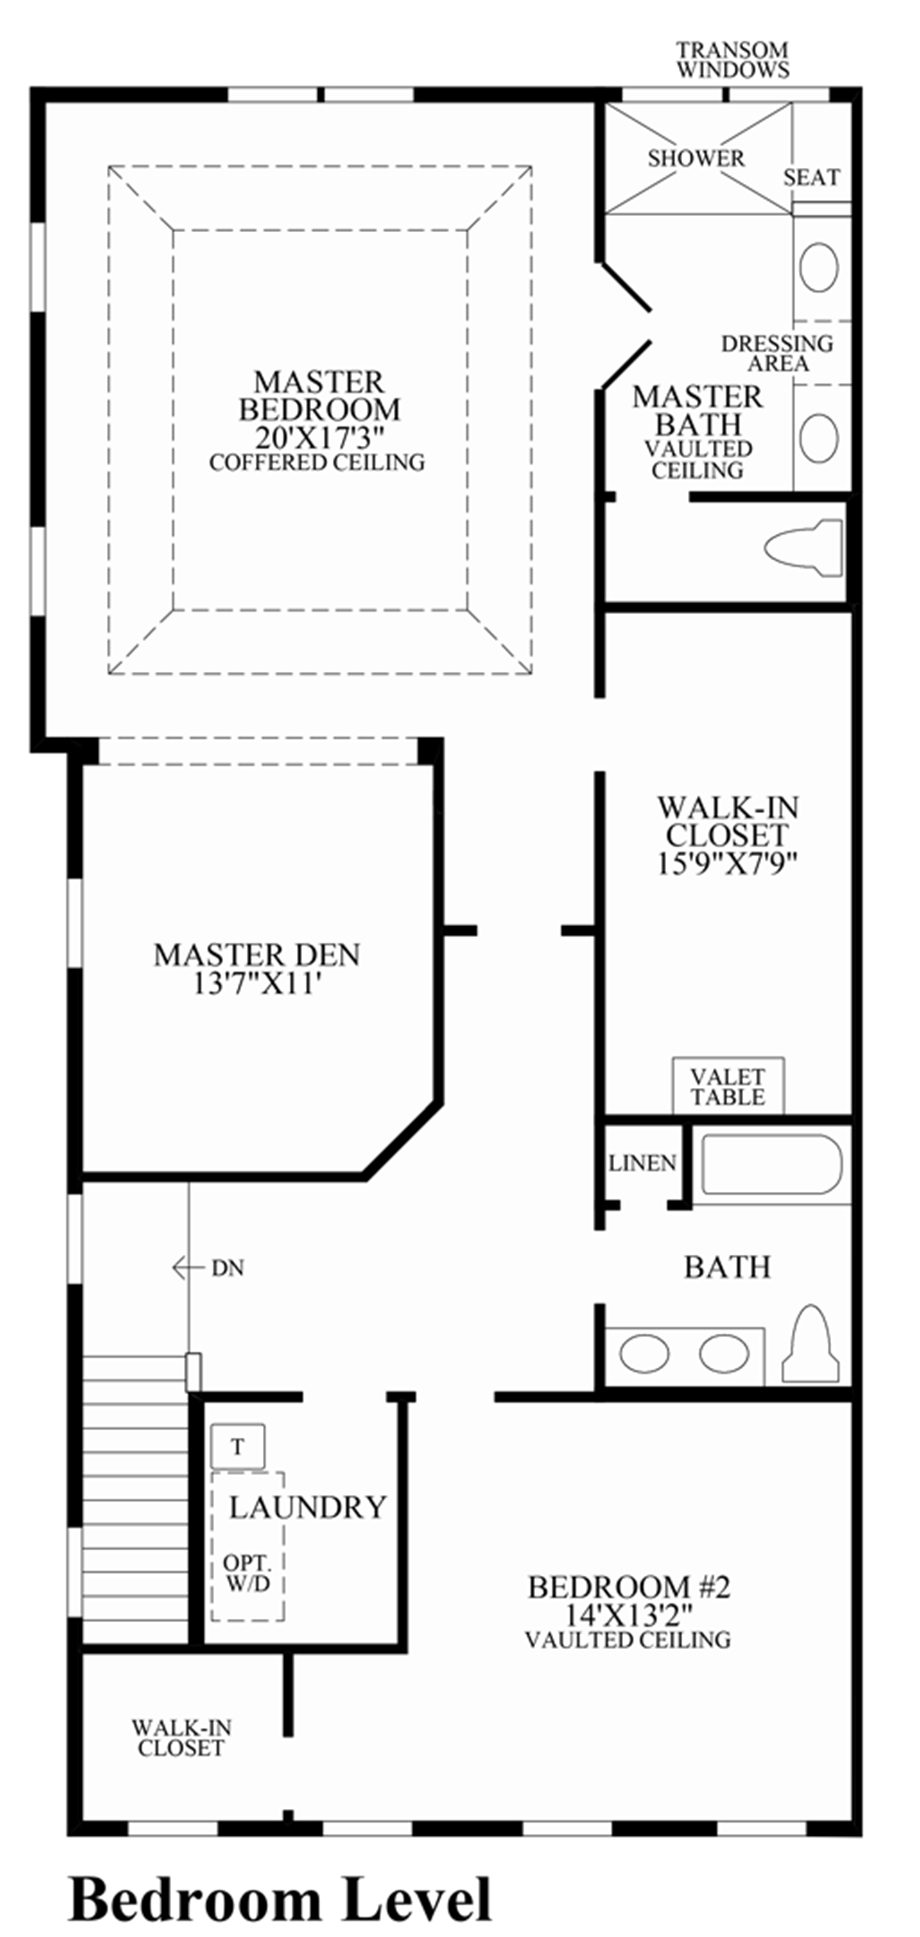 Toll brothers at valeria the abbott home design for Design your own bedroom floor plan